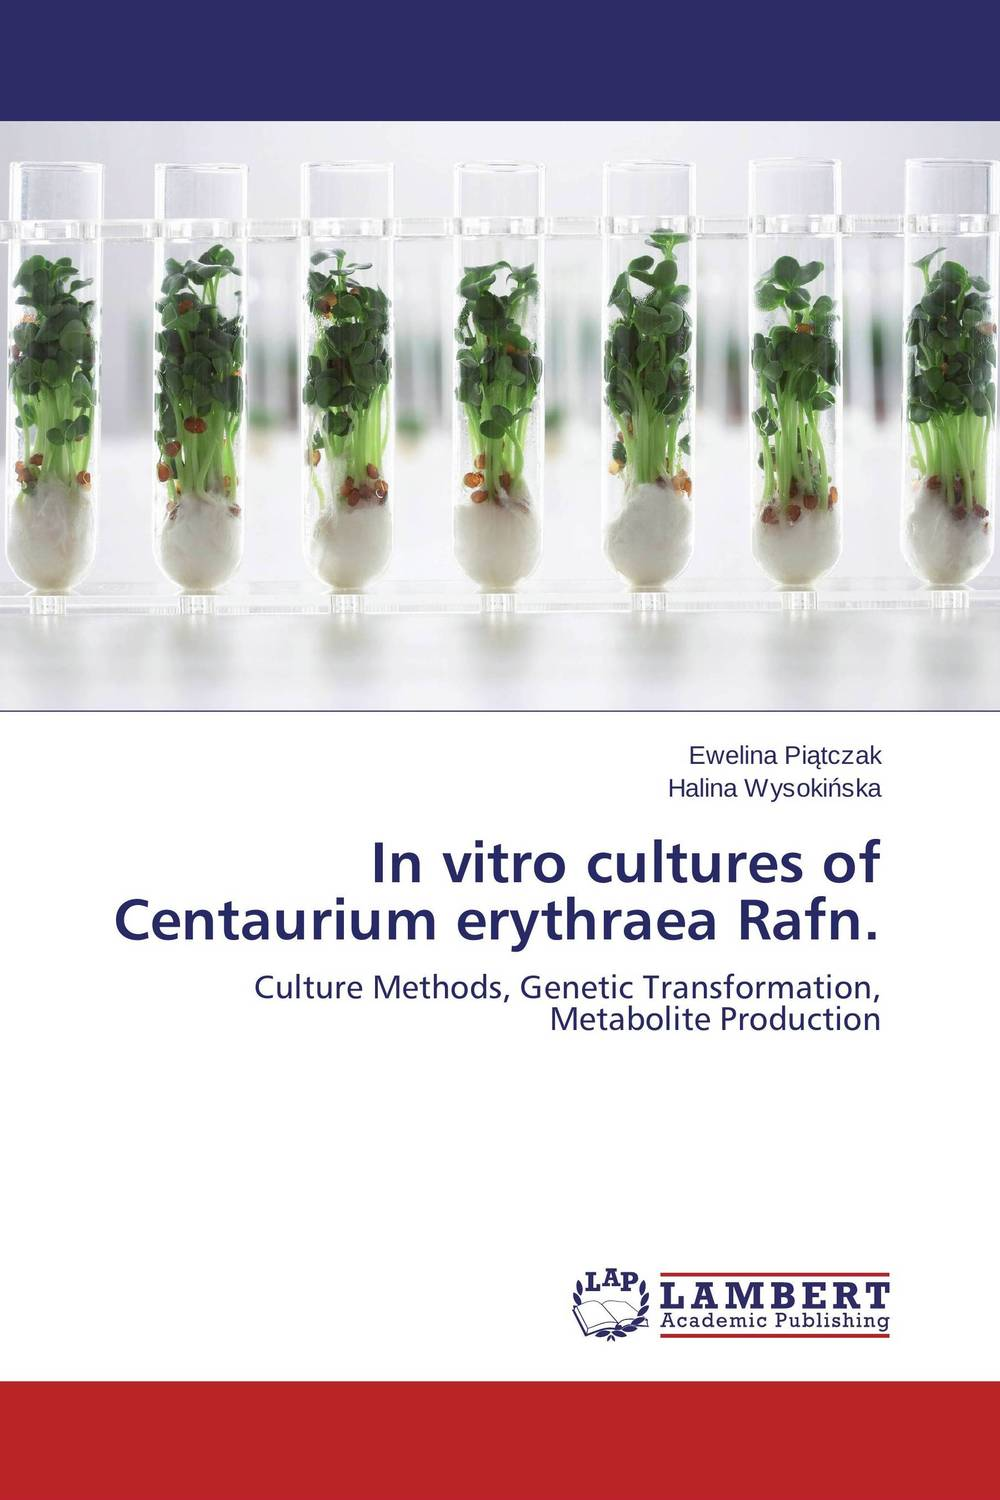 In vitro cultures of Centaurium erythraea Rafn. как еще героя в cultures